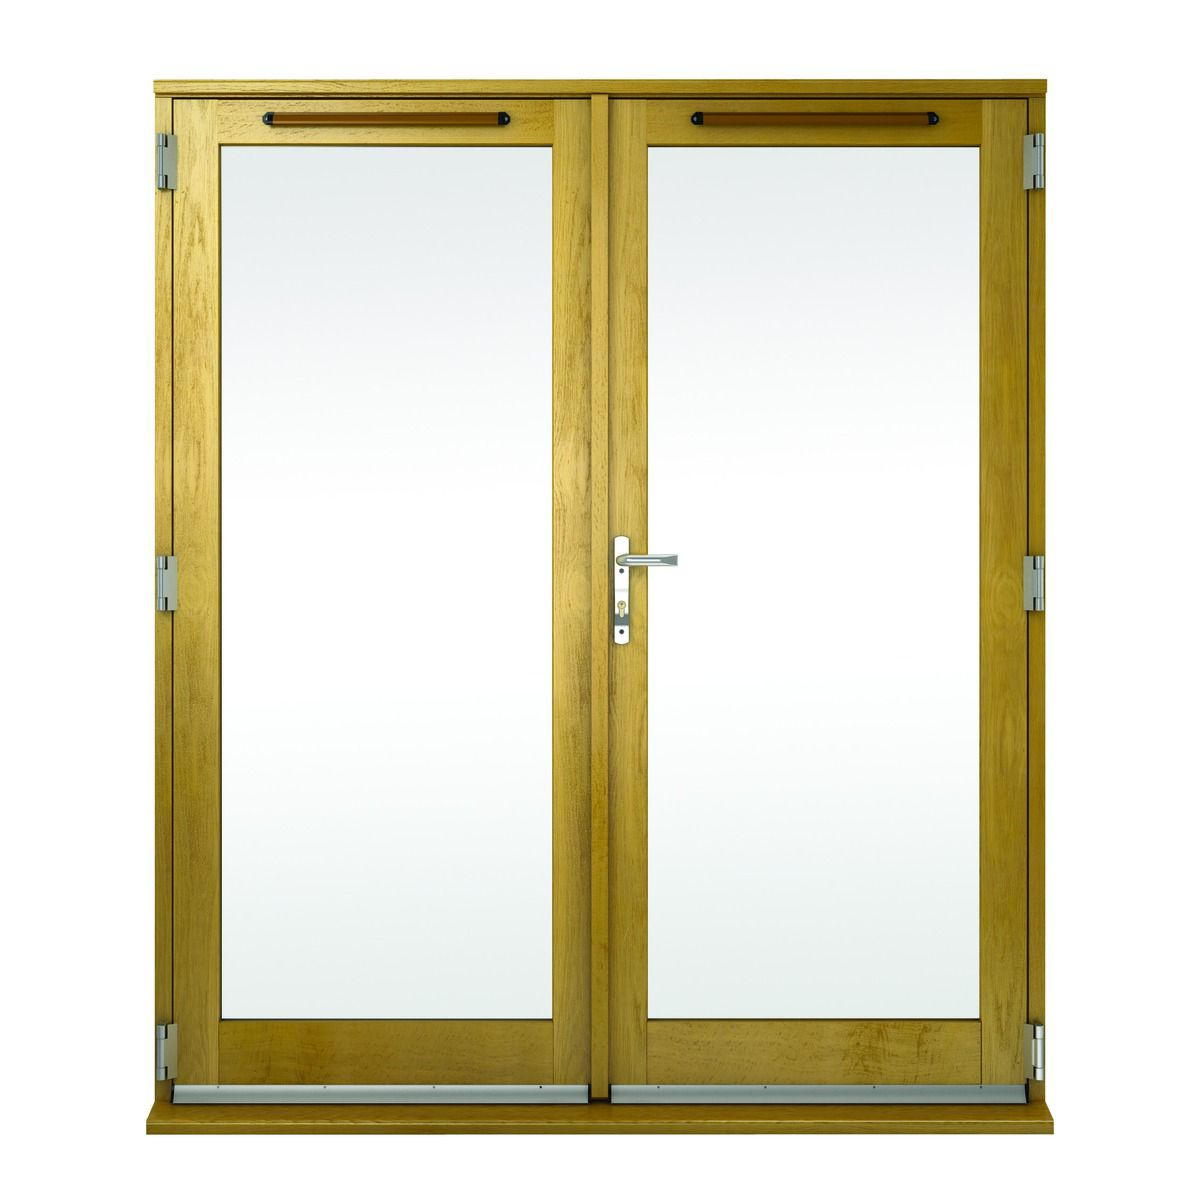 Albery Pattern 10 Bar Solid Oak Laminate French Door Outwards Opening |  Wickes.co.uk